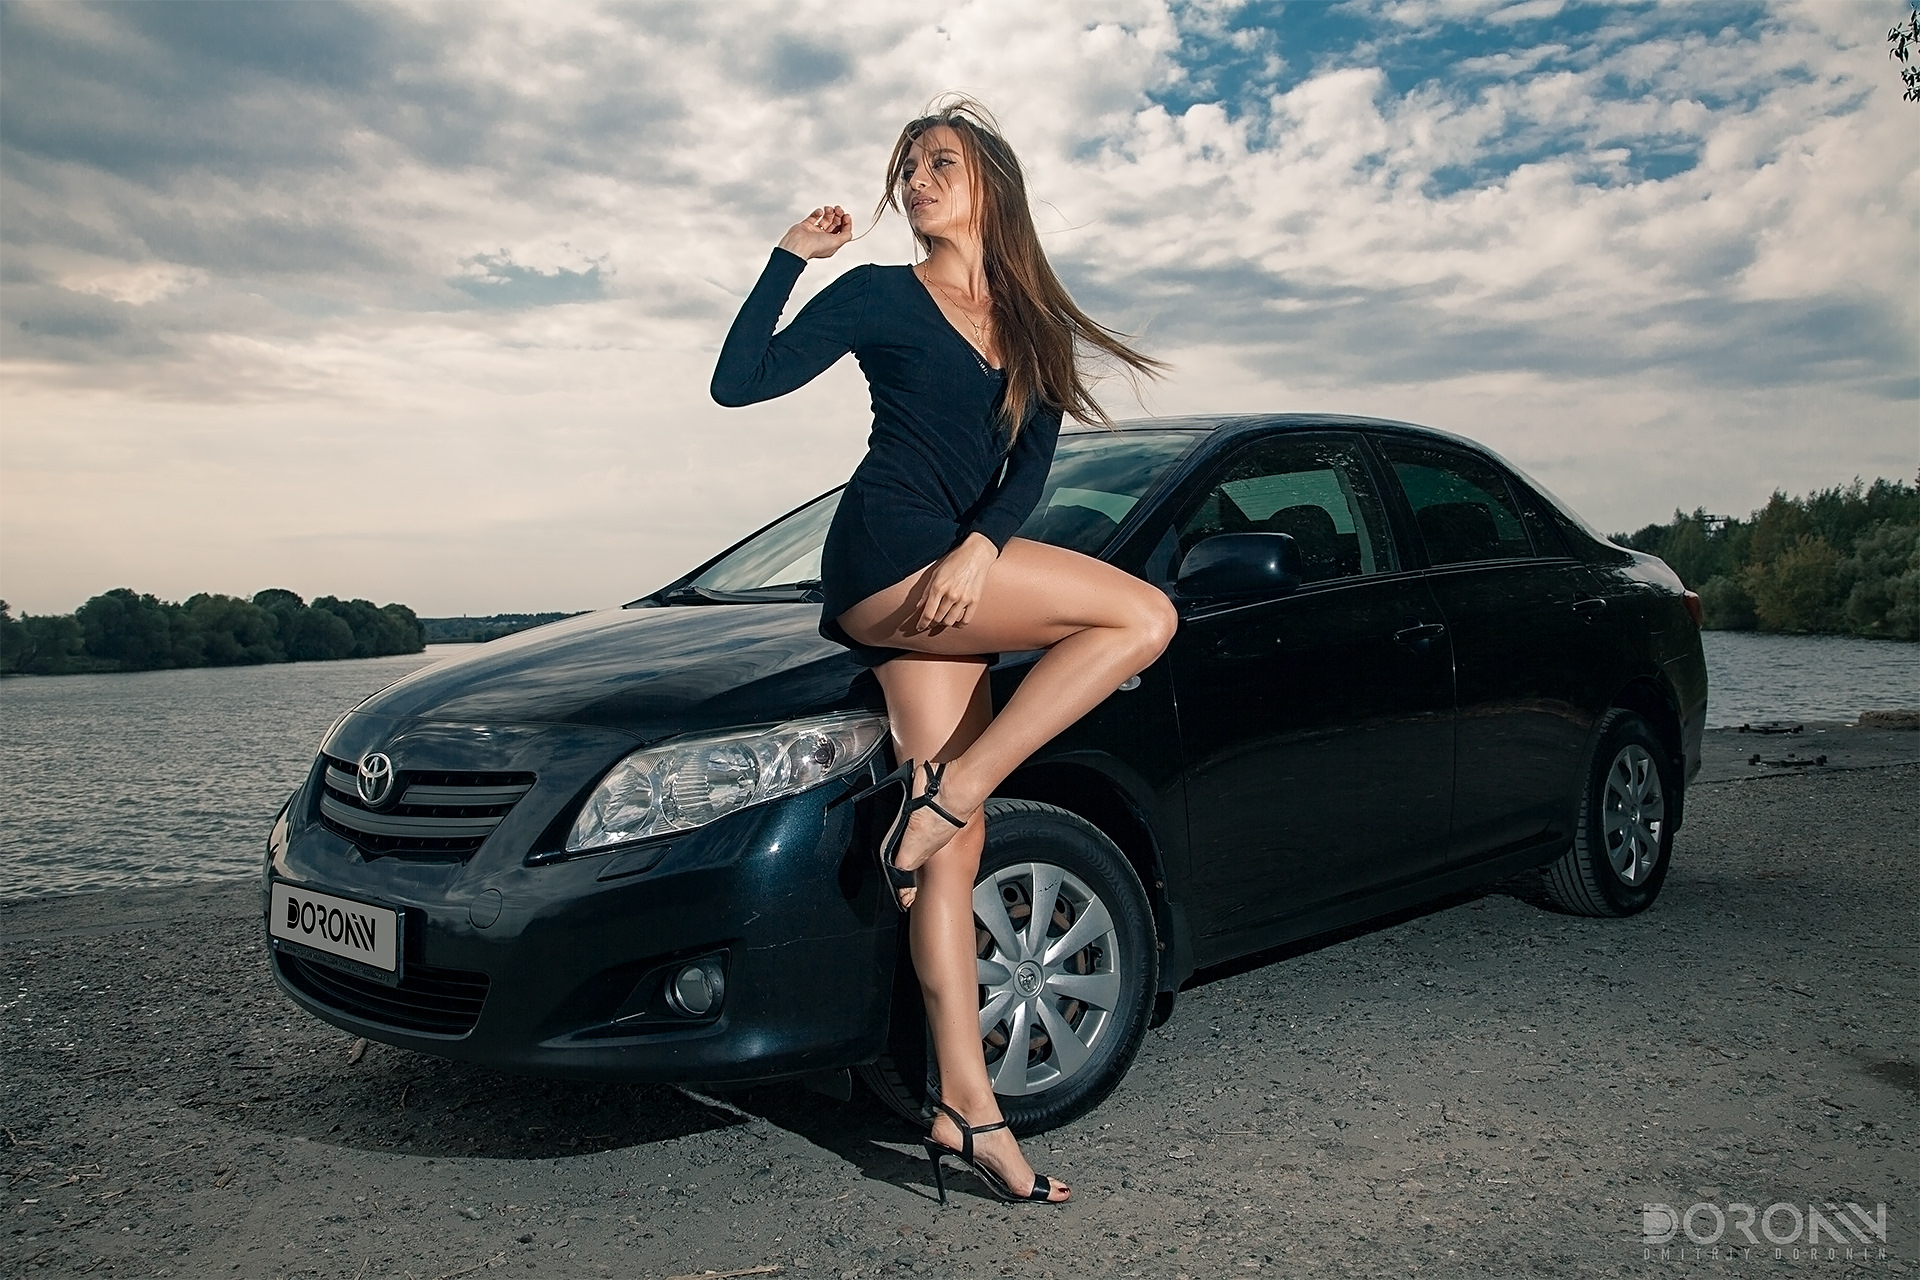 This is the most honest and compelling ad for a toyota corolla